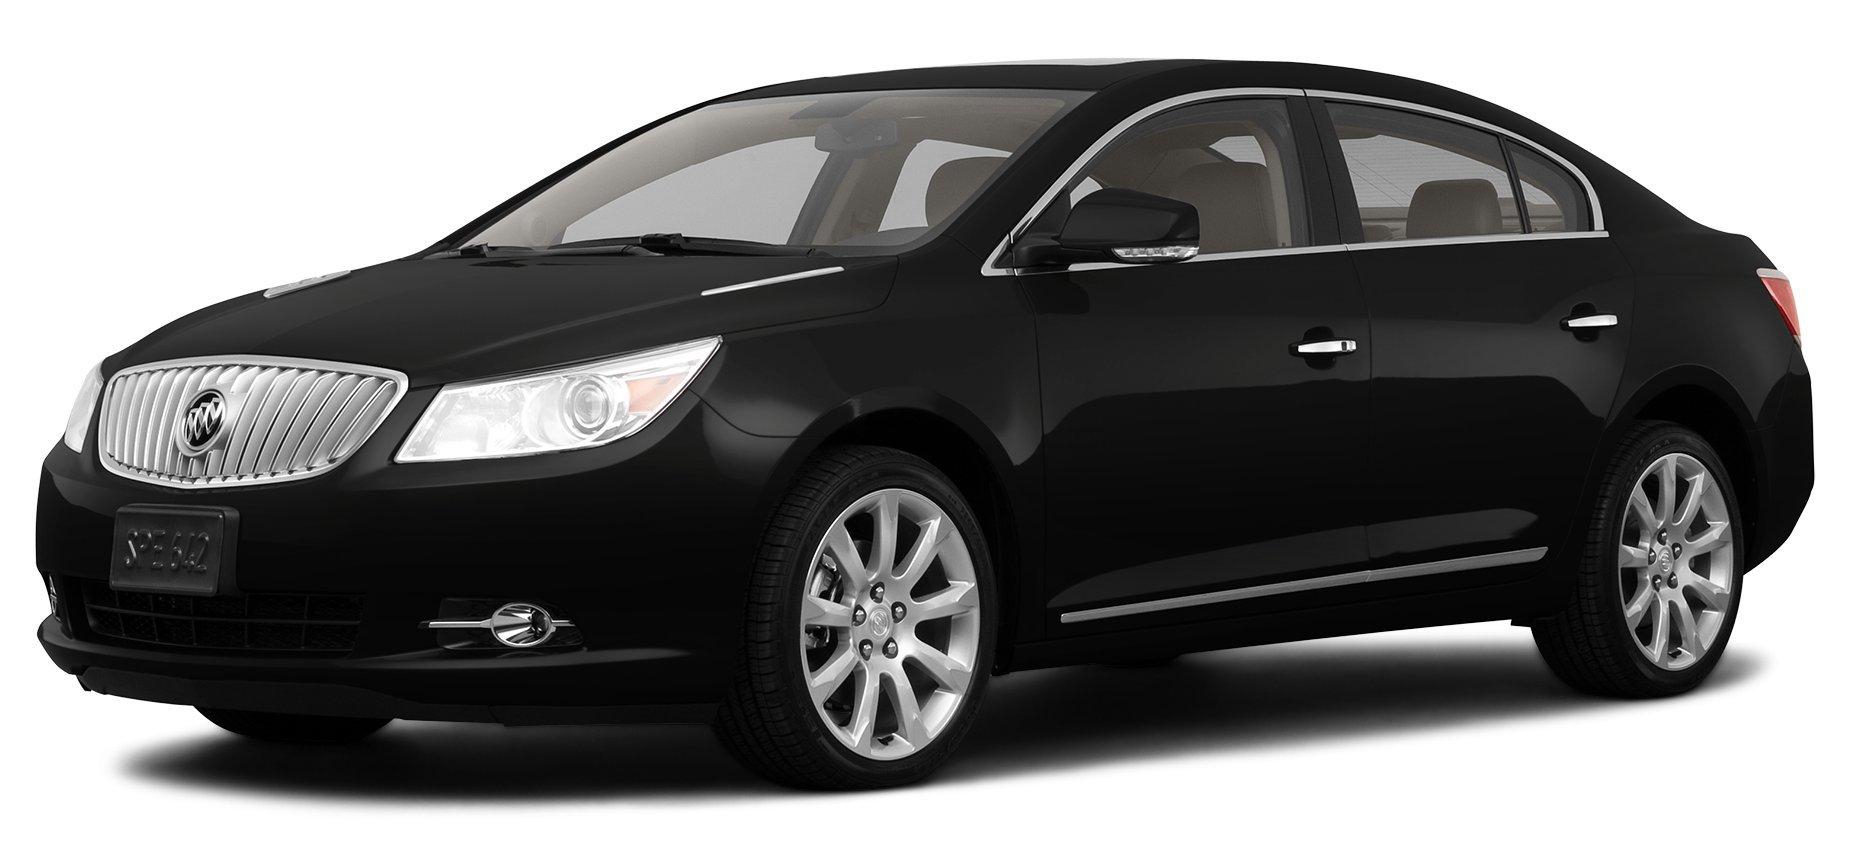 2011 buick lacrosse reviews images and specs. Black Bedroom Furniture Sets. Home Design Ideas